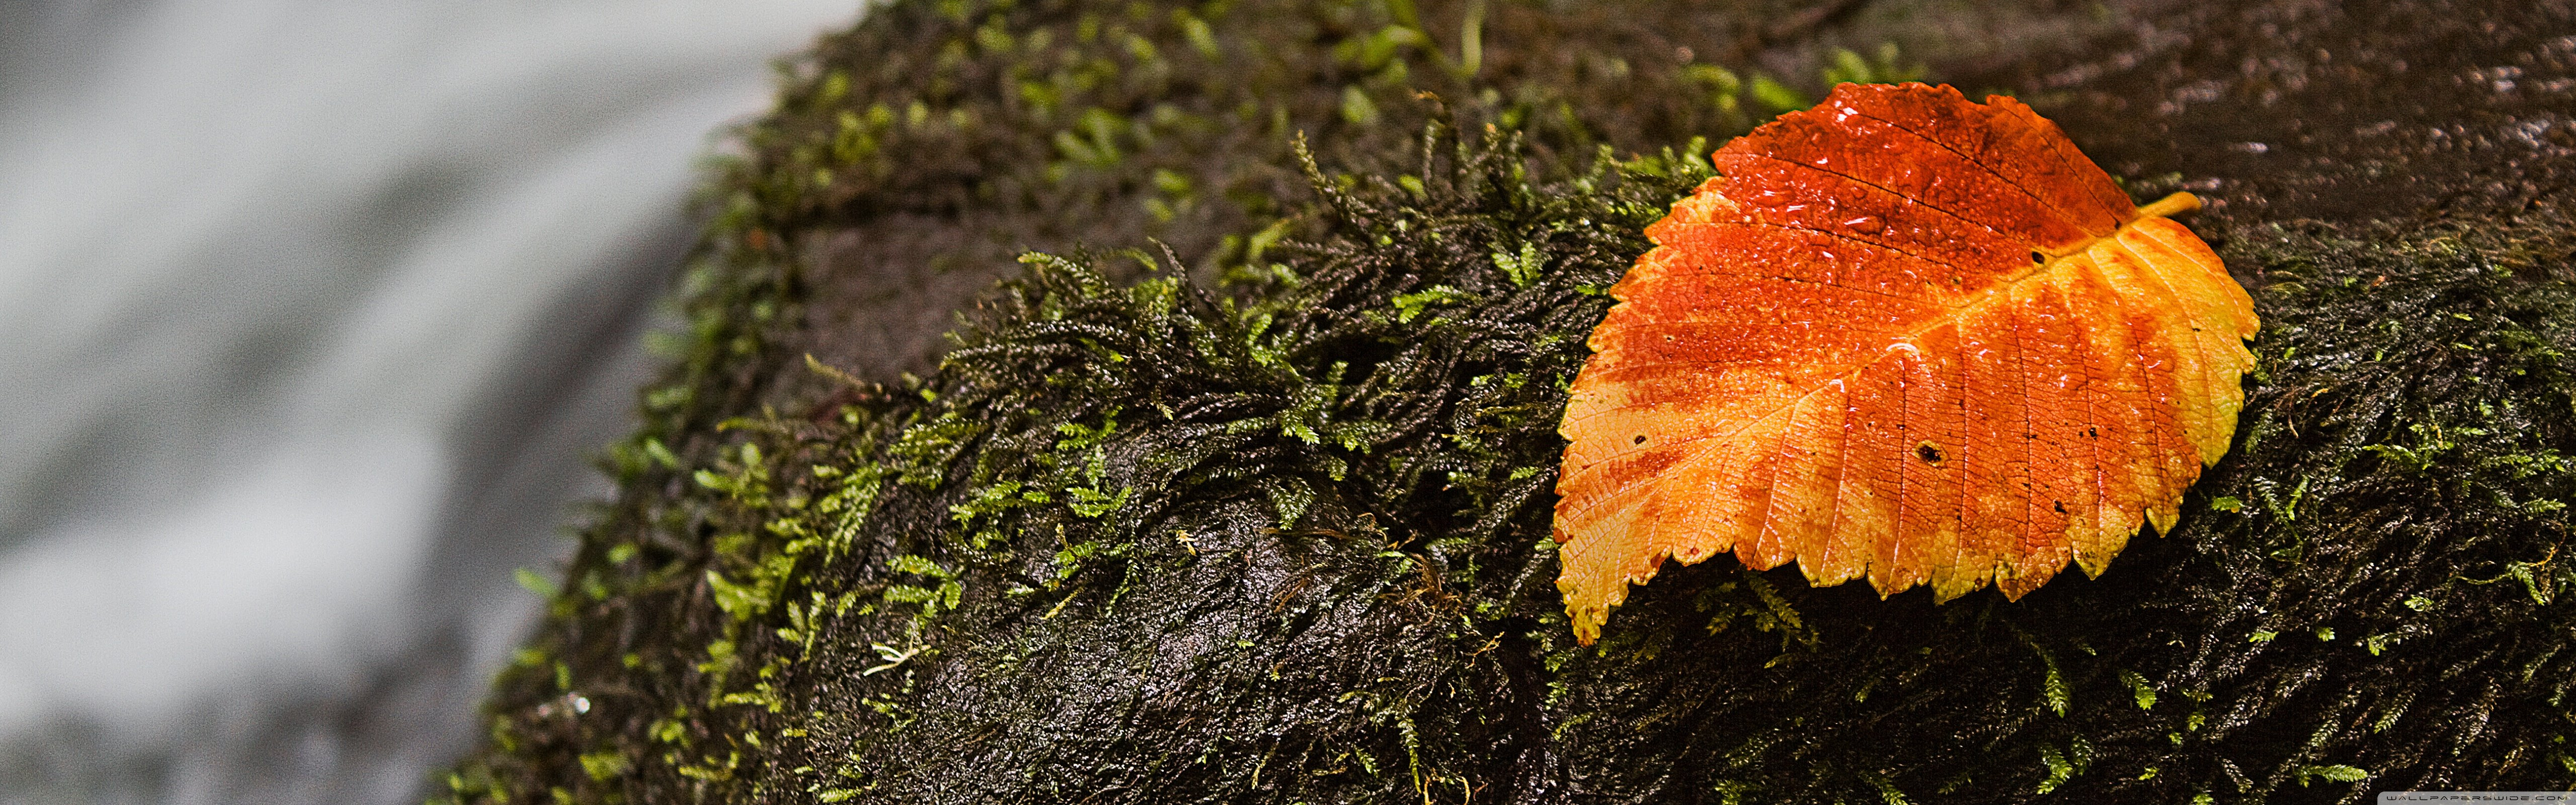 Wet Leaf And Moss 4K HD Desktop Wallpaper for 4K Ultra HD TV 5120x1600